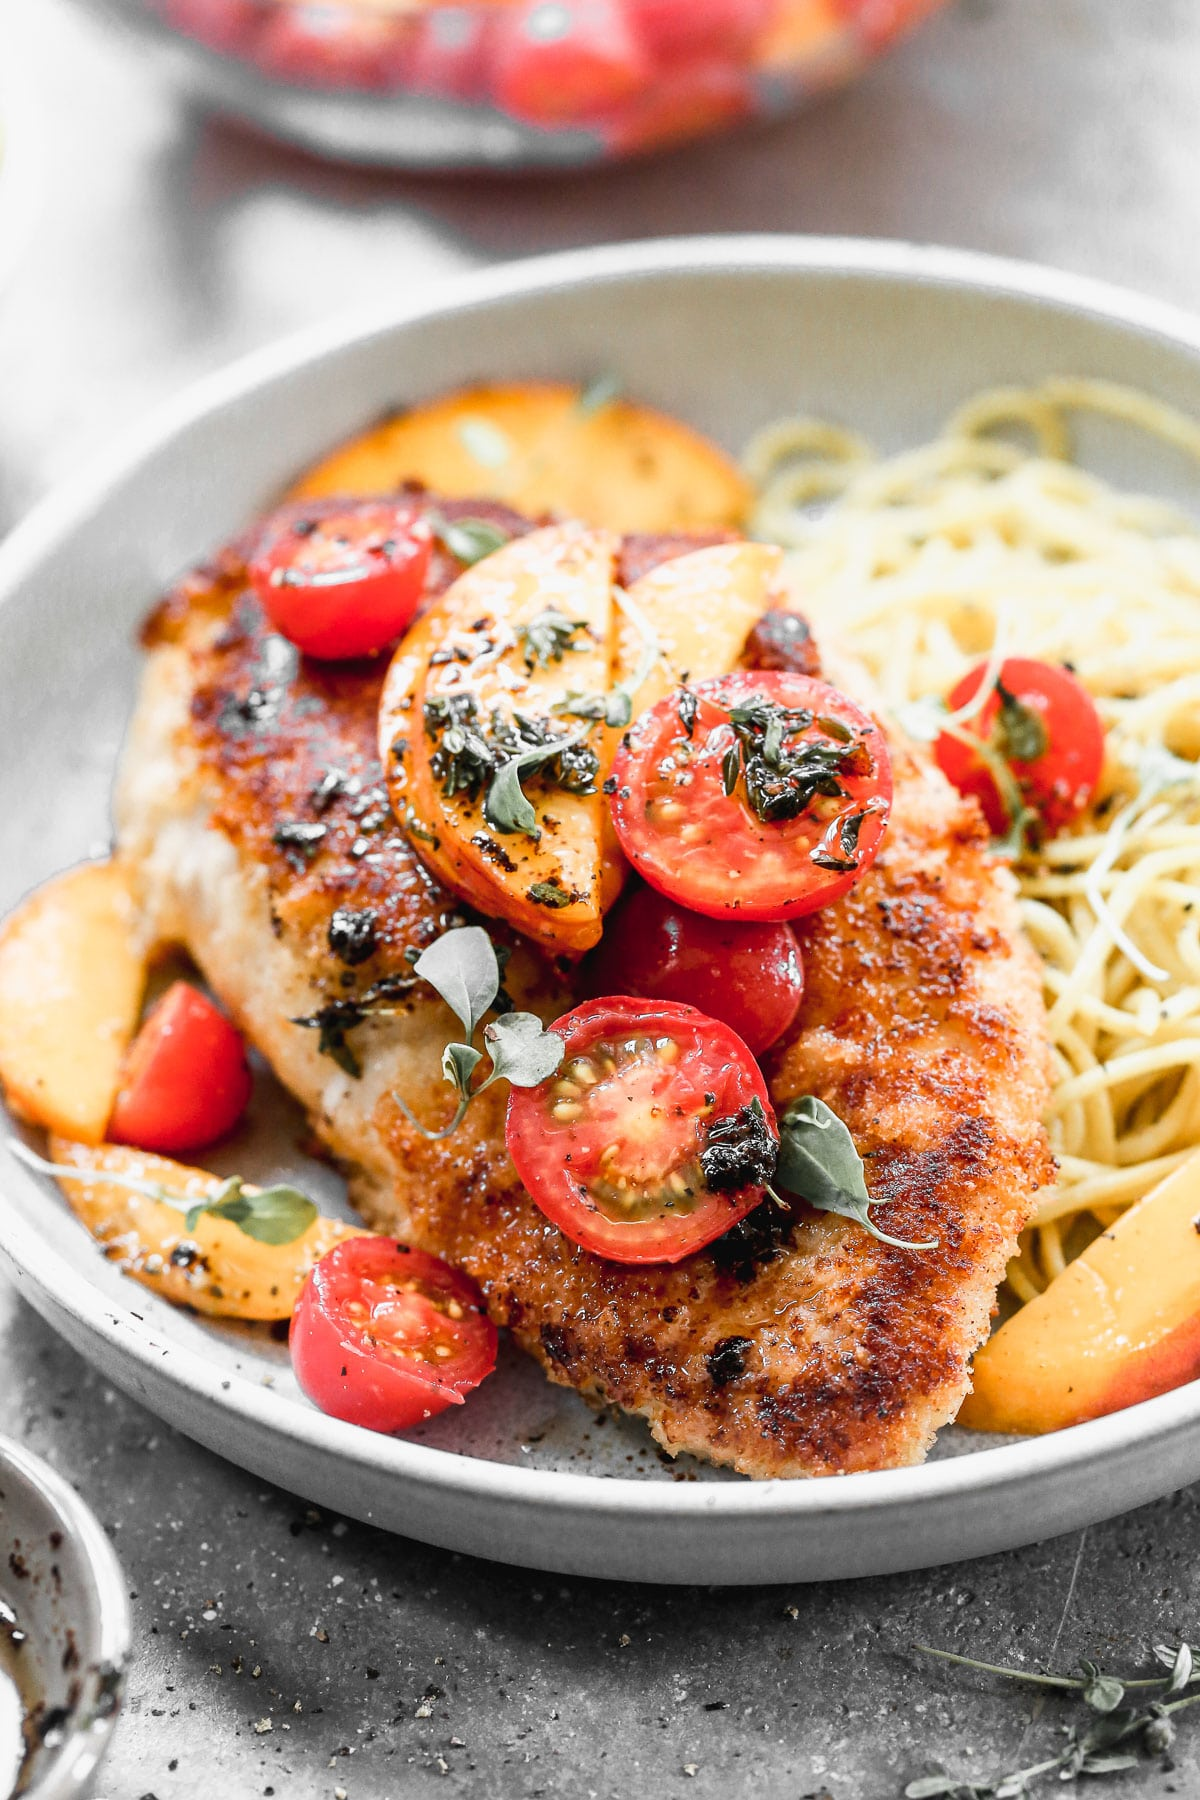 If summer were showcased on a plate it would surely be in the form of our Mozzarella-Stuffed Peach Chicken. This ultra crispy on the exterior, cheesy and tender on the interior winner of a chicken dish is adorned with the sweetest peaches and tomatoes and then drizzled with an intoxicating combination of brown butter, thyme, and lemon.You don't want to miss it!